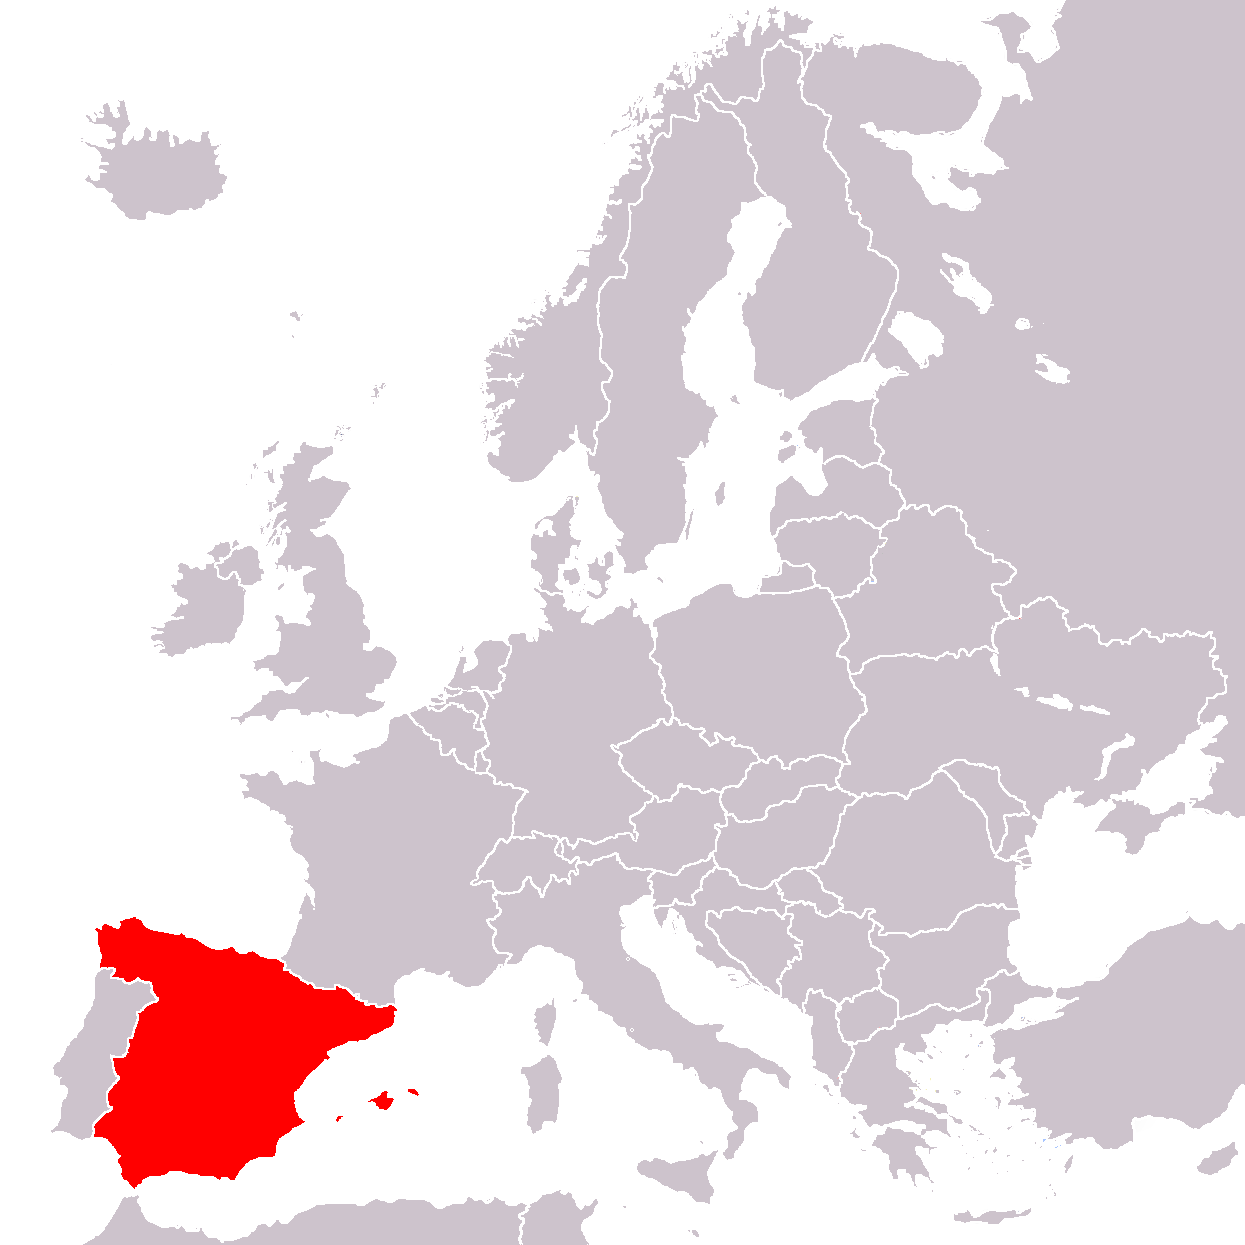 Spain Map Of Europe.File Europe Location Spain Png Wikimedia Commons